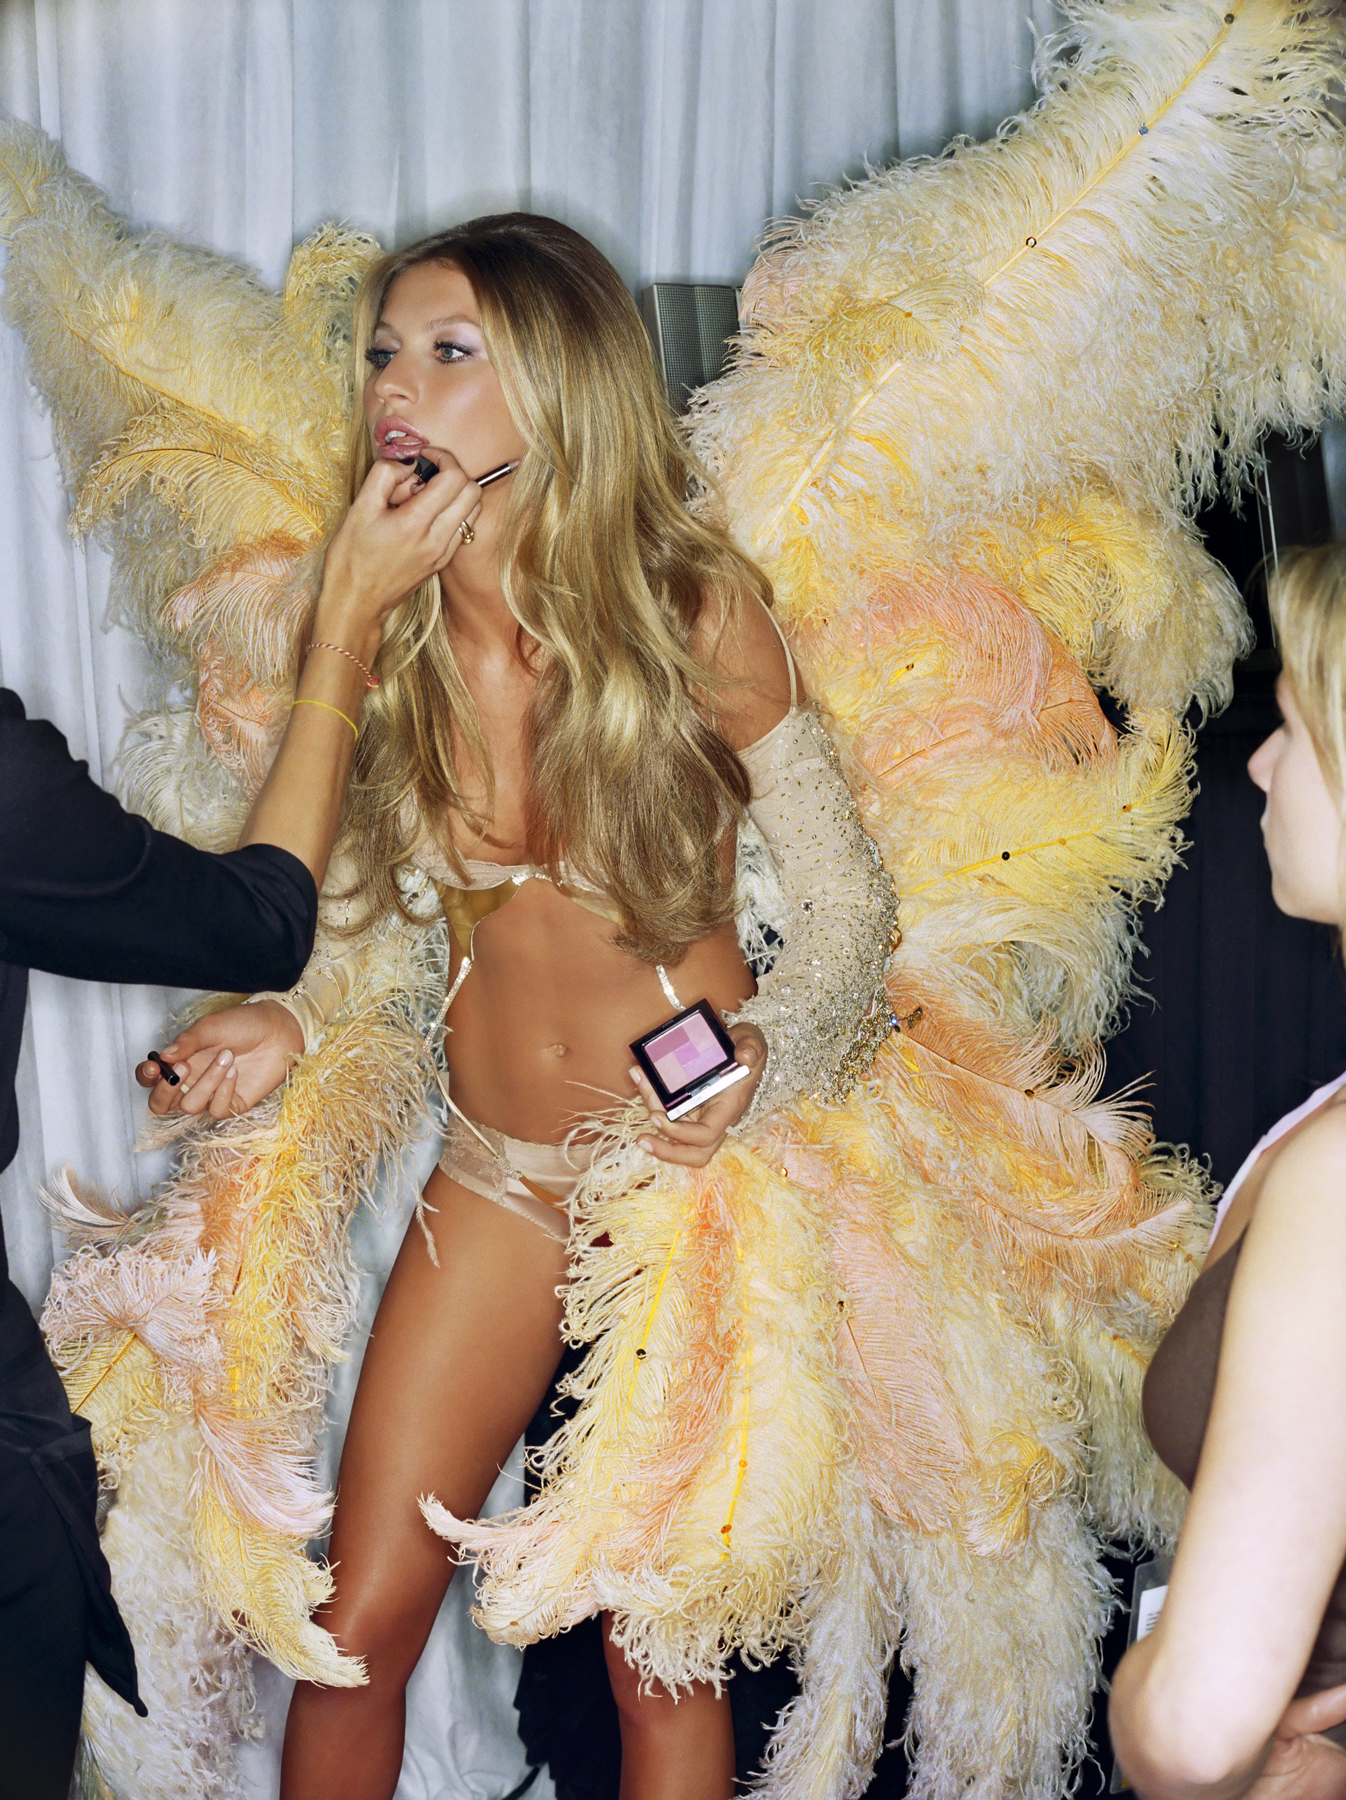 Gisele Lips Backstage I by Gavin Bond